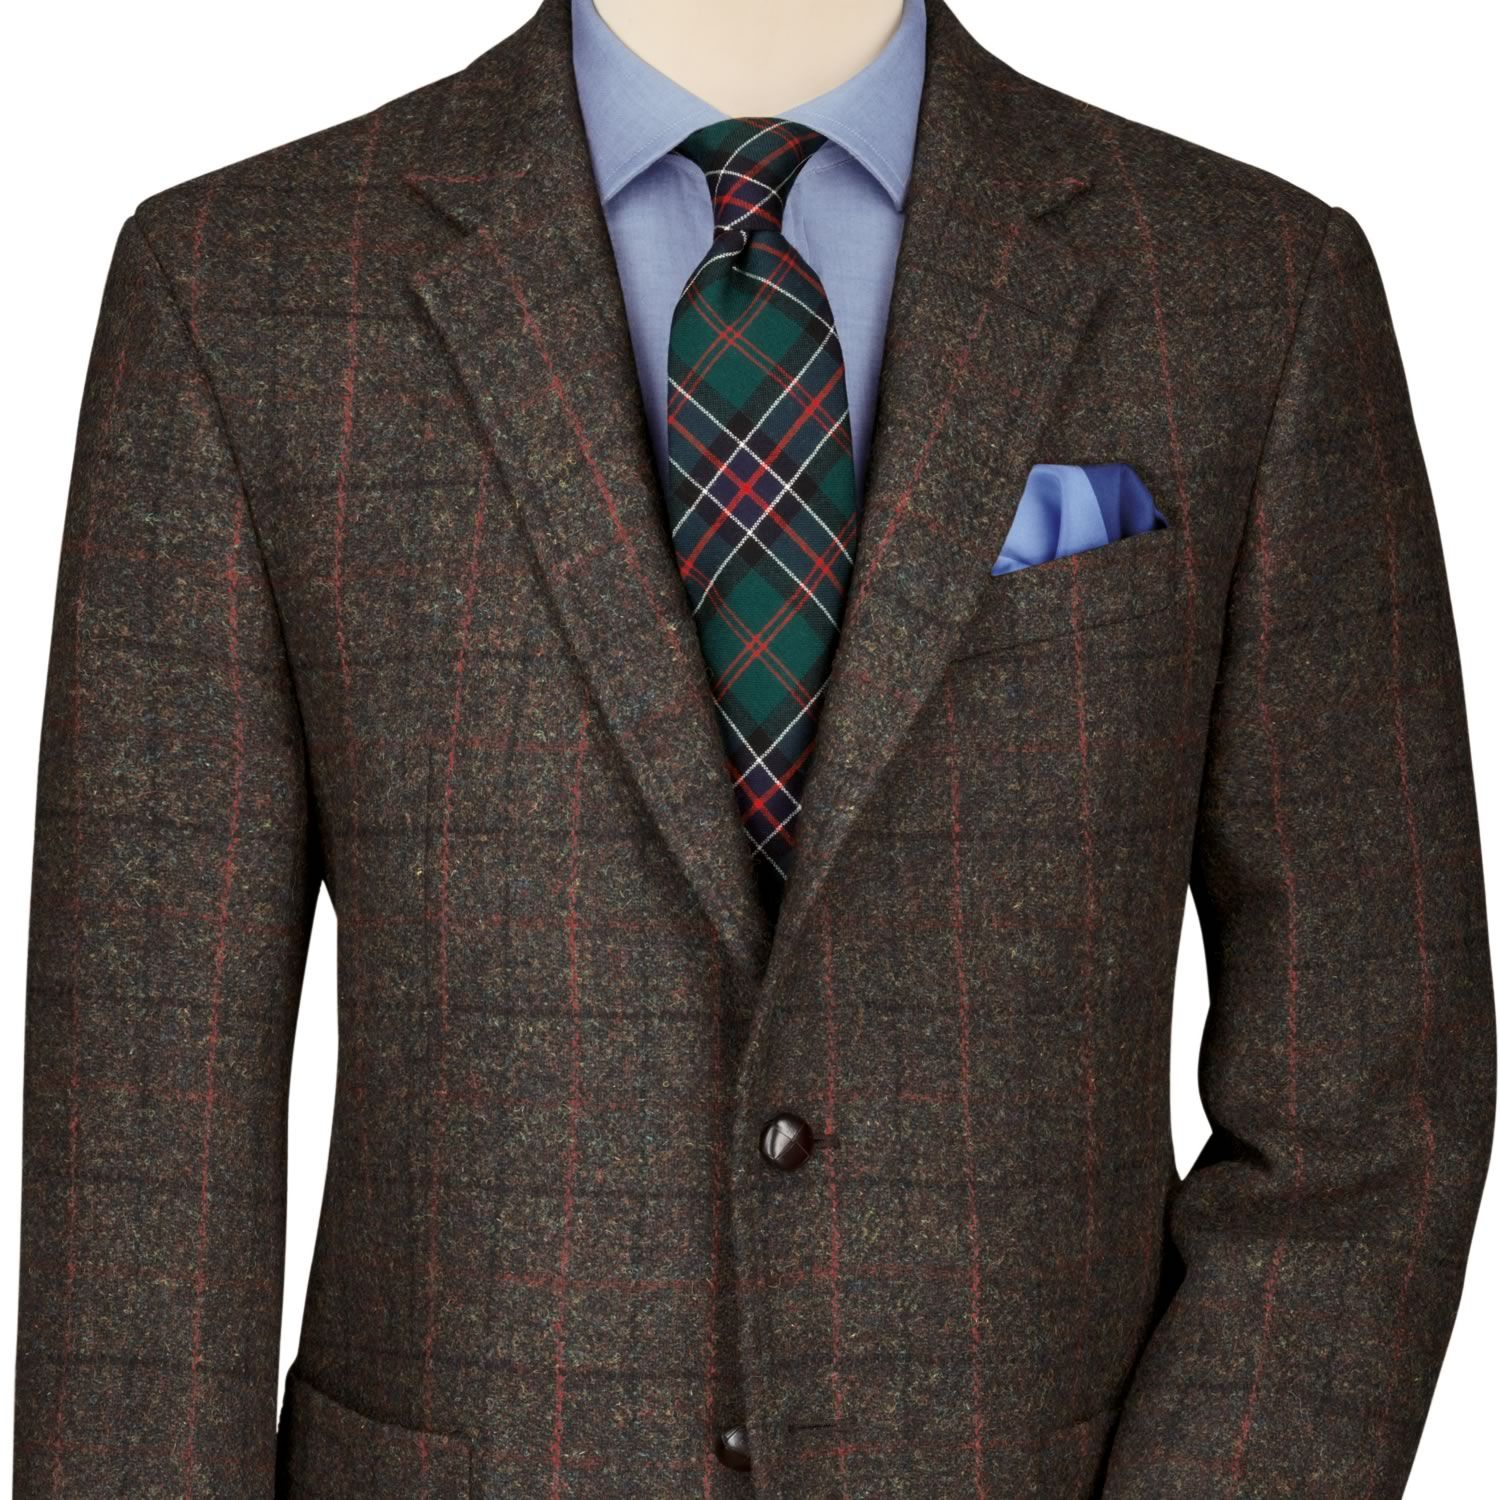 Dark green check Harris tweed classic fit jacket | Men's sport ...